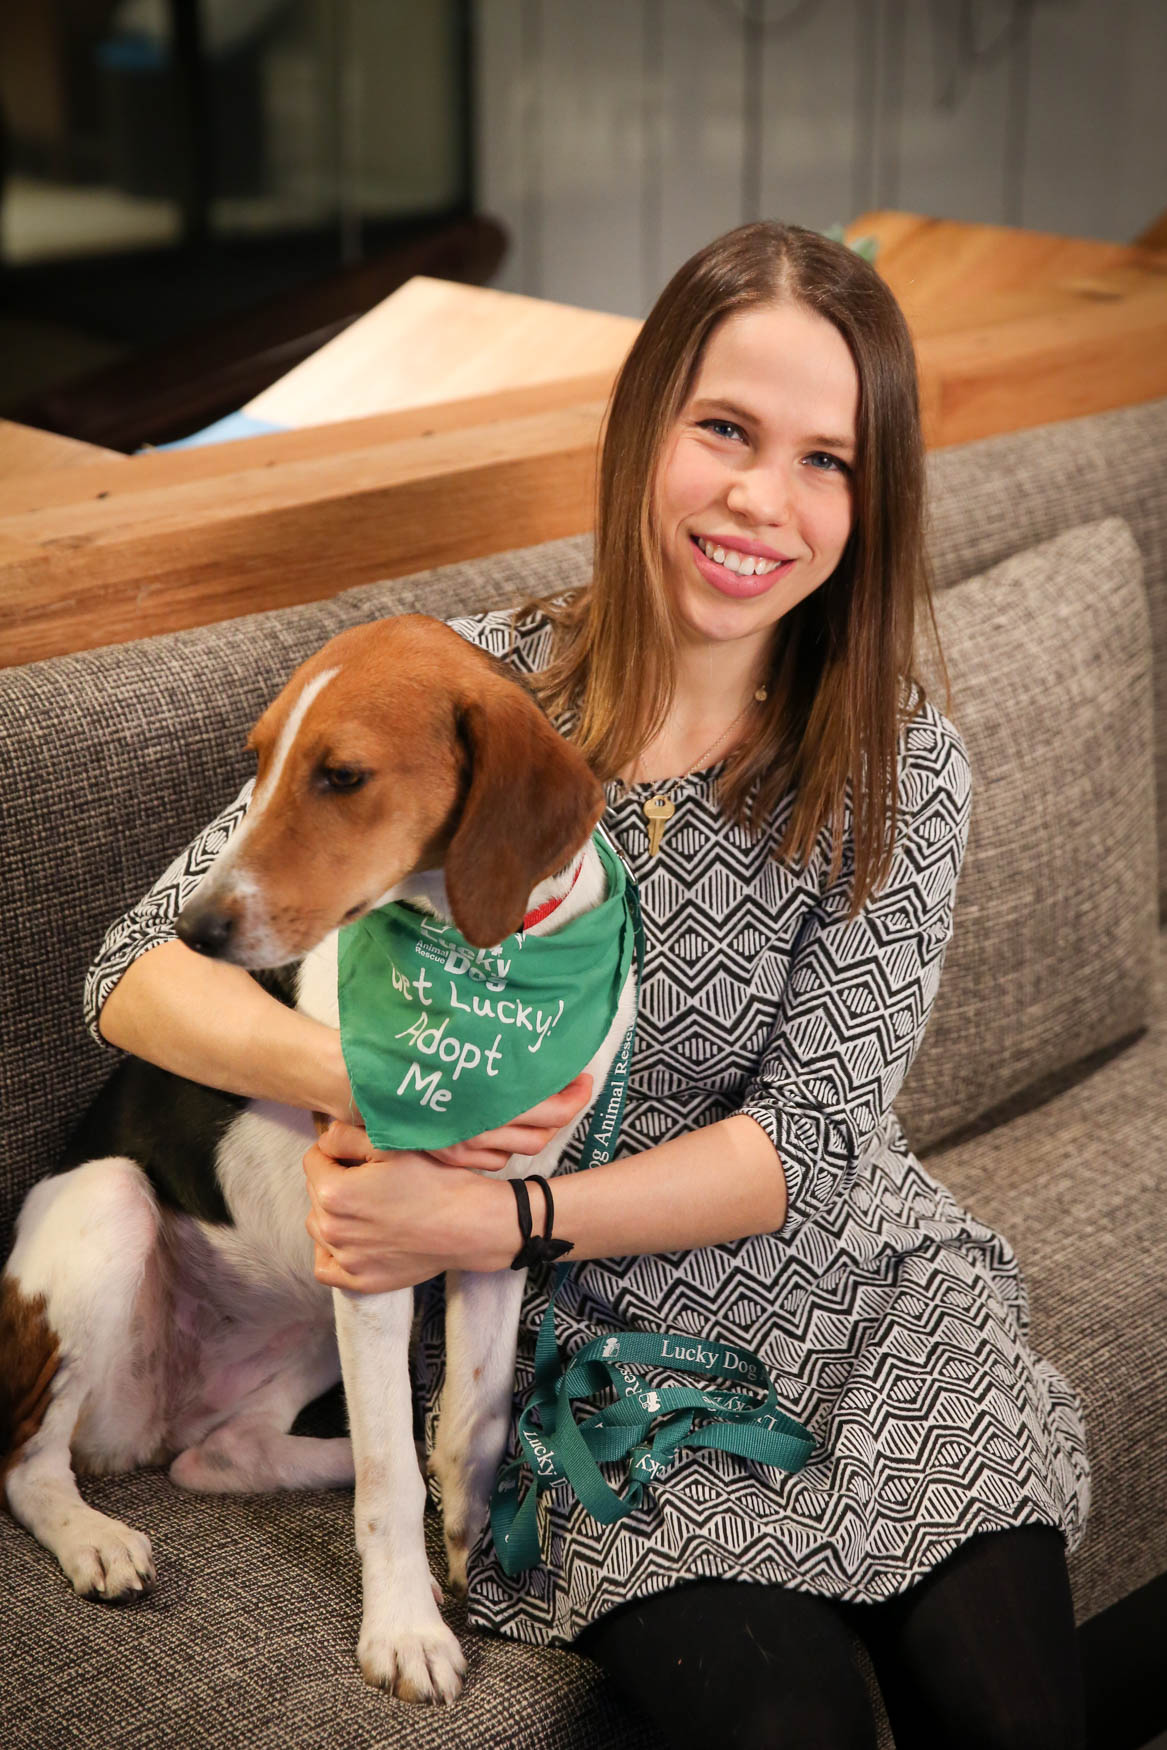 Meet Peggy and Judith, a 2(ish)-year-old Hound mix and a 26-year-old human respectively. Photo location: Moxy Washington, D.C. Downtown (Image: Amanda Andrade-Rhoades/ DC Refined)